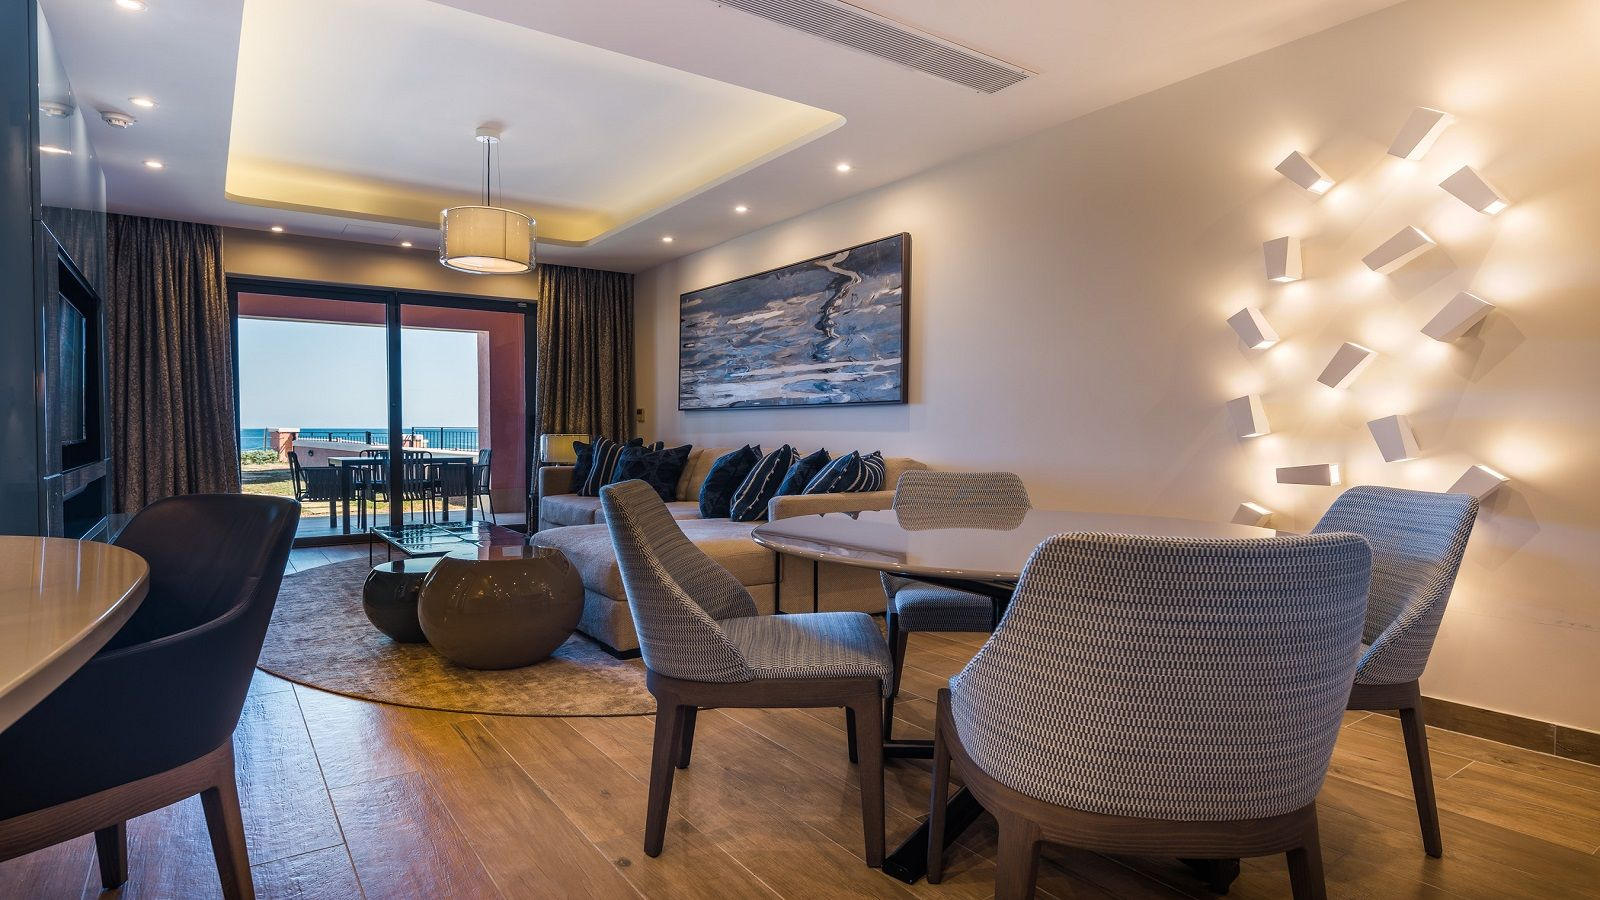 . London based interior designer unveils  suite dreams  in Malta